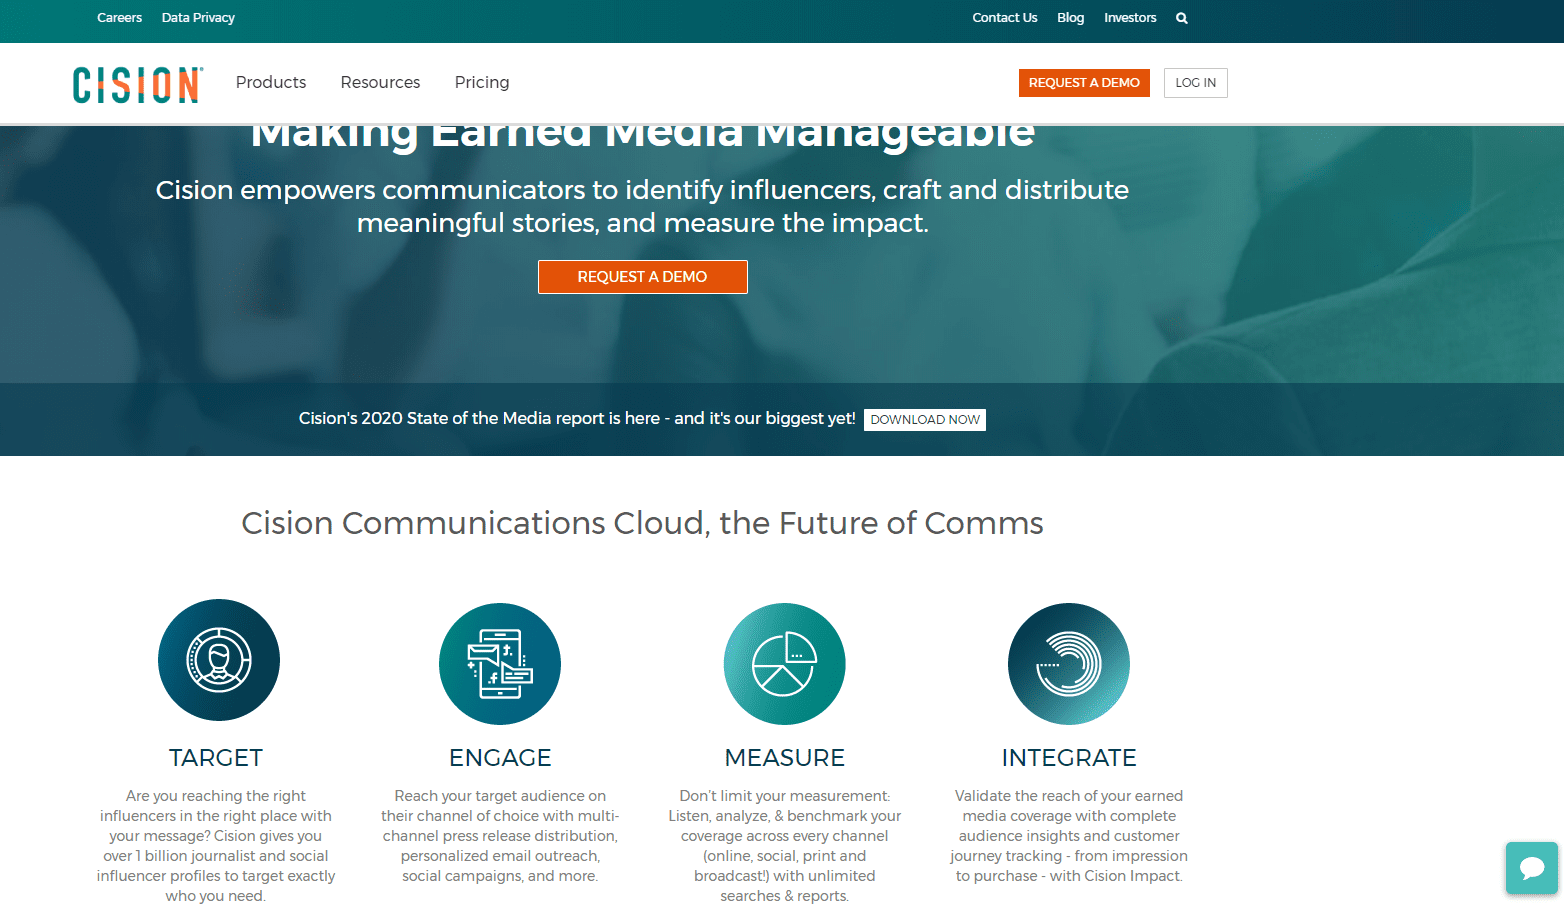 Cision Home Page 1